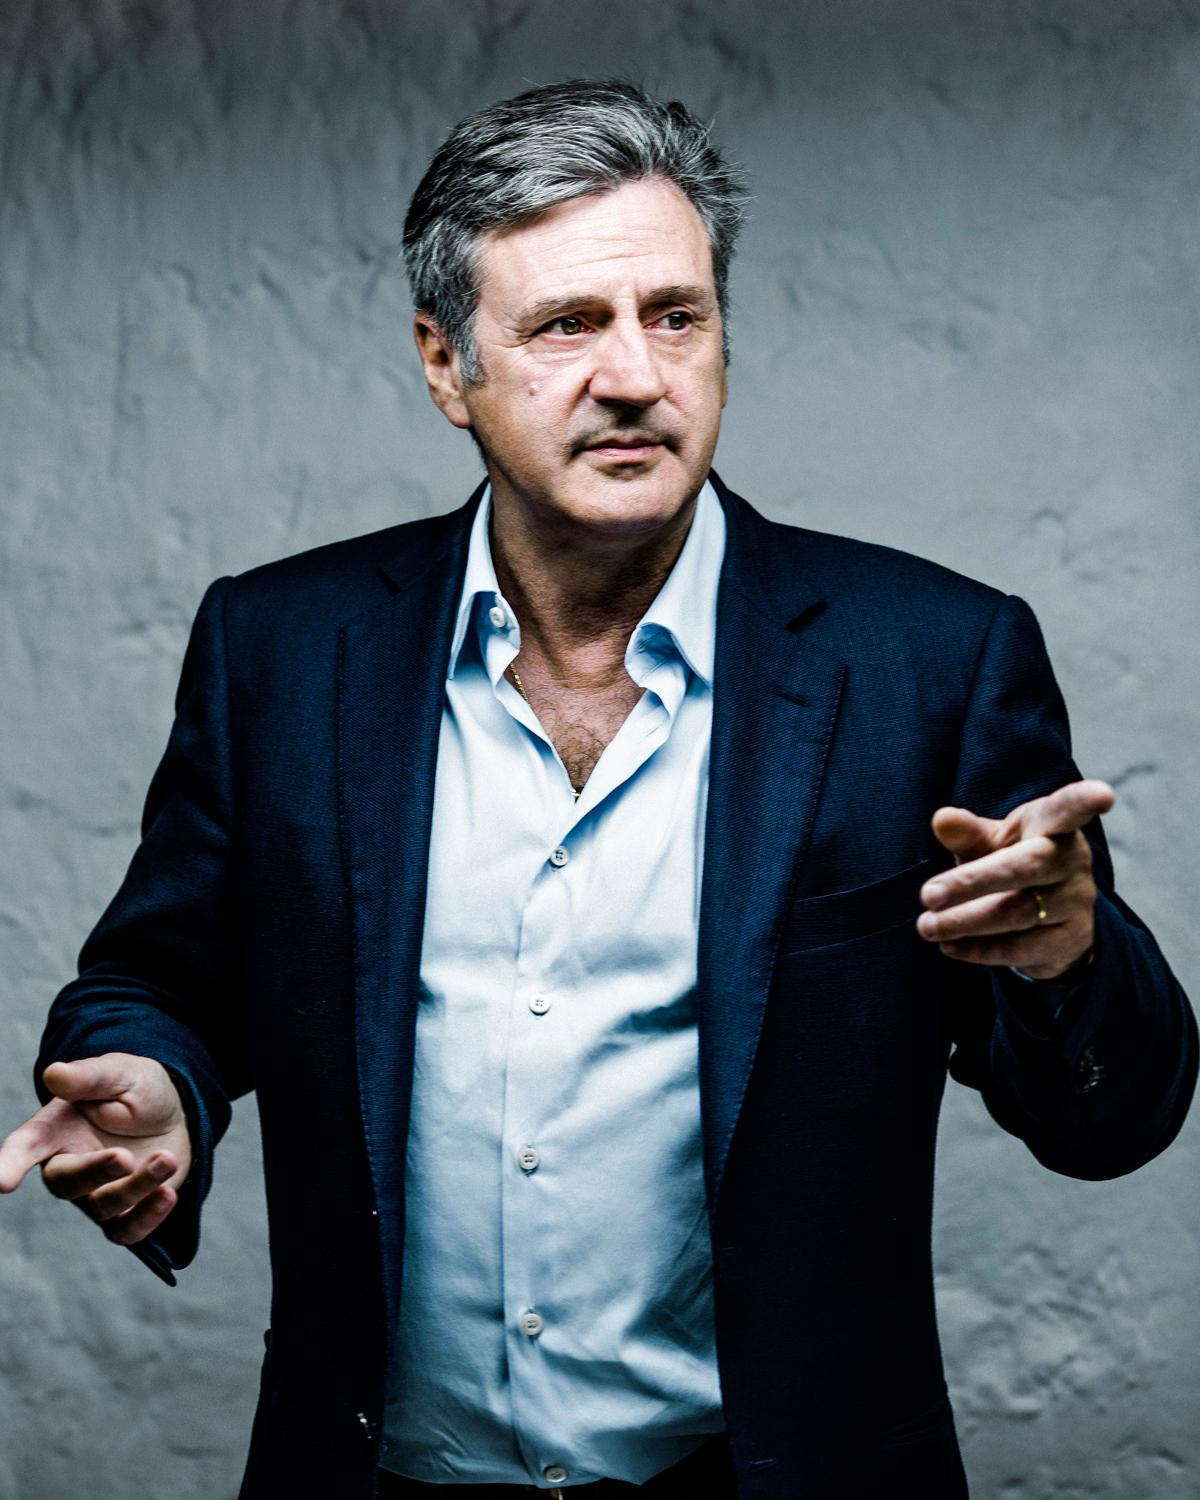 daniel auteuil cogipdaniel auteuil movies, daniel auteuil wikipedia, daniel auteuil cogip, daniel auteuil et ses femmes, daniel auteuil emmanuelle béart, daniel auteuil photo, daniel auteuil filmographie, daniel auteuil 2016, daniel auteuil interview, daniel auteuil wiki, daniel auteuil youtube, daniel auteuil movies list, daniel auteuil wiki fr, daniel auteuil acteur